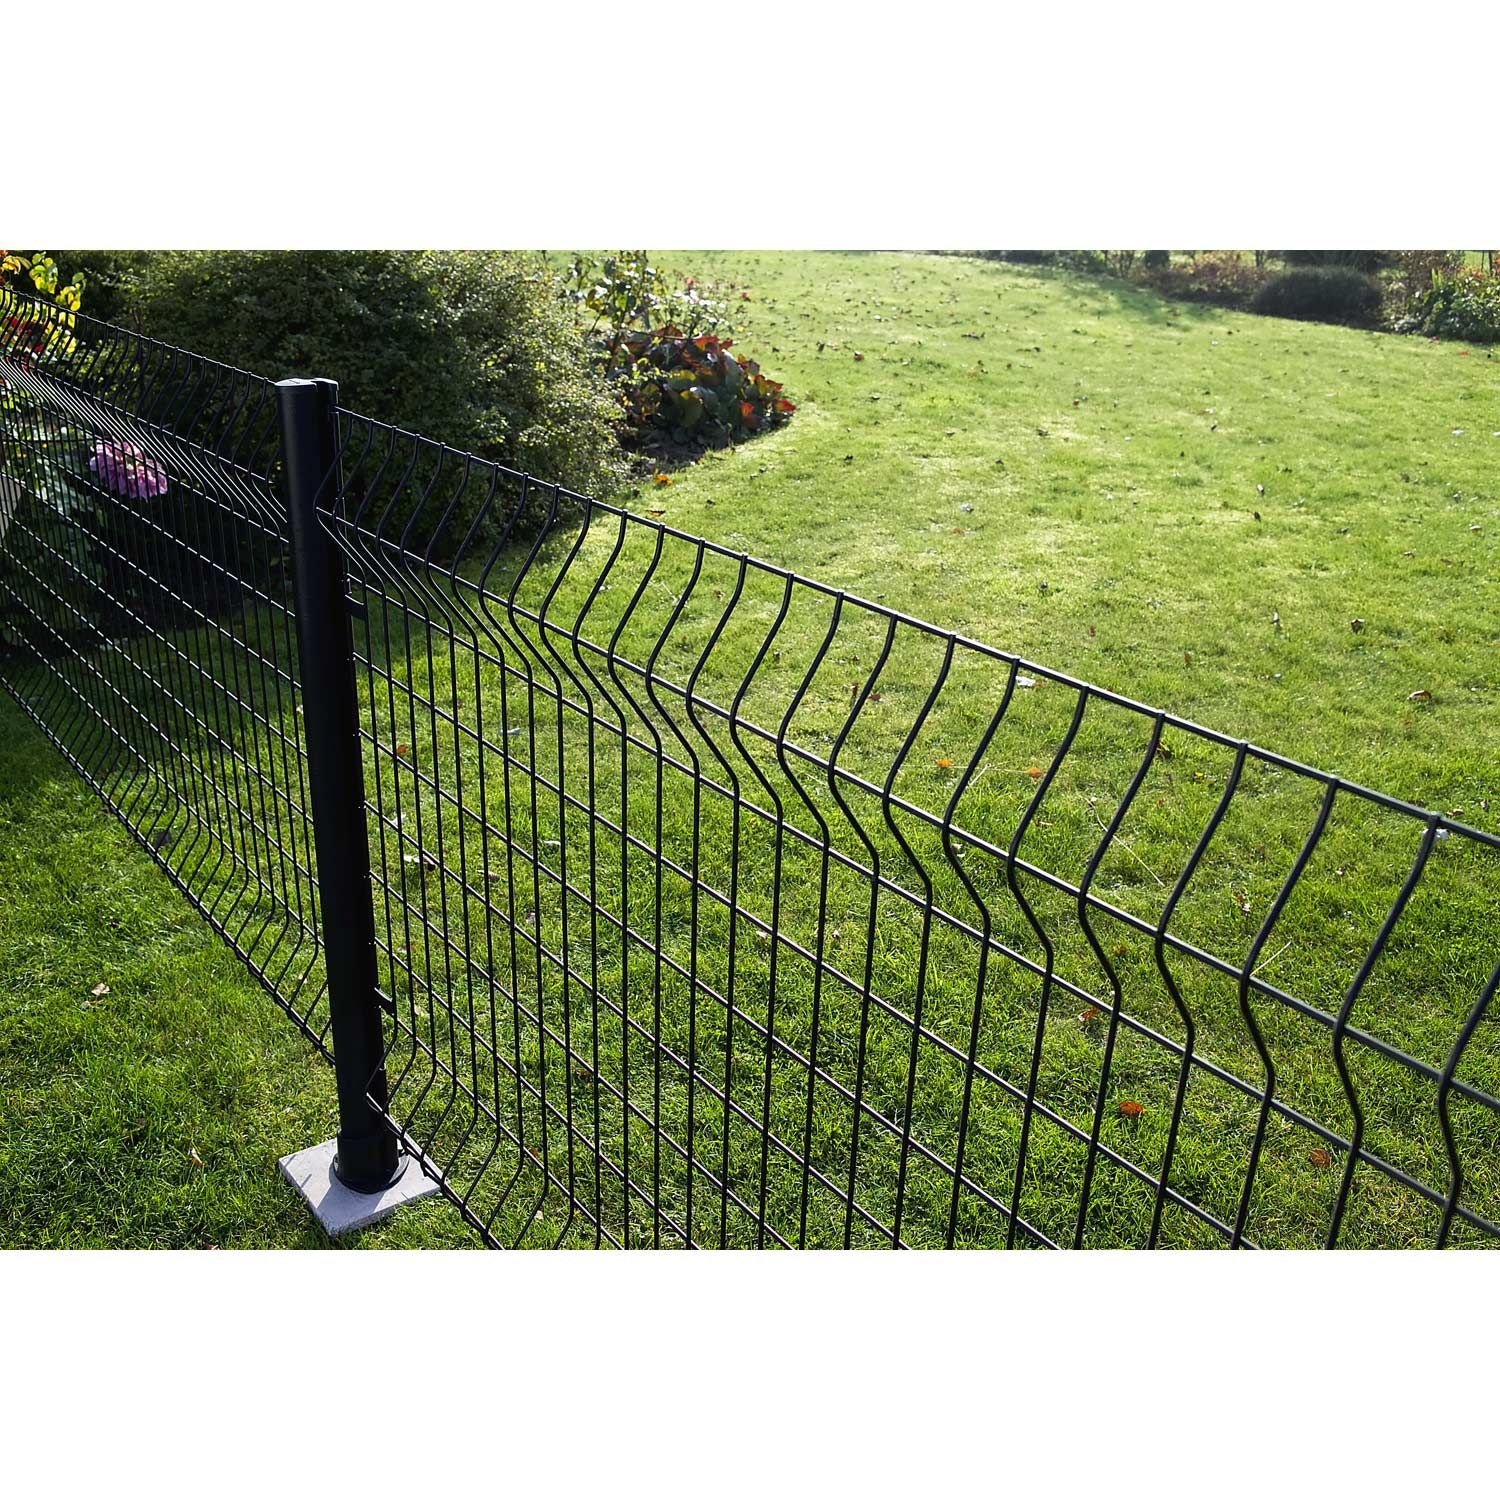 Panneau Grillage Noir H 1 43 X L 2 M Maille H 100 X L 55 Mm Leroy Merlin Cloture Jardin Cloture Maison Grillage Rigide